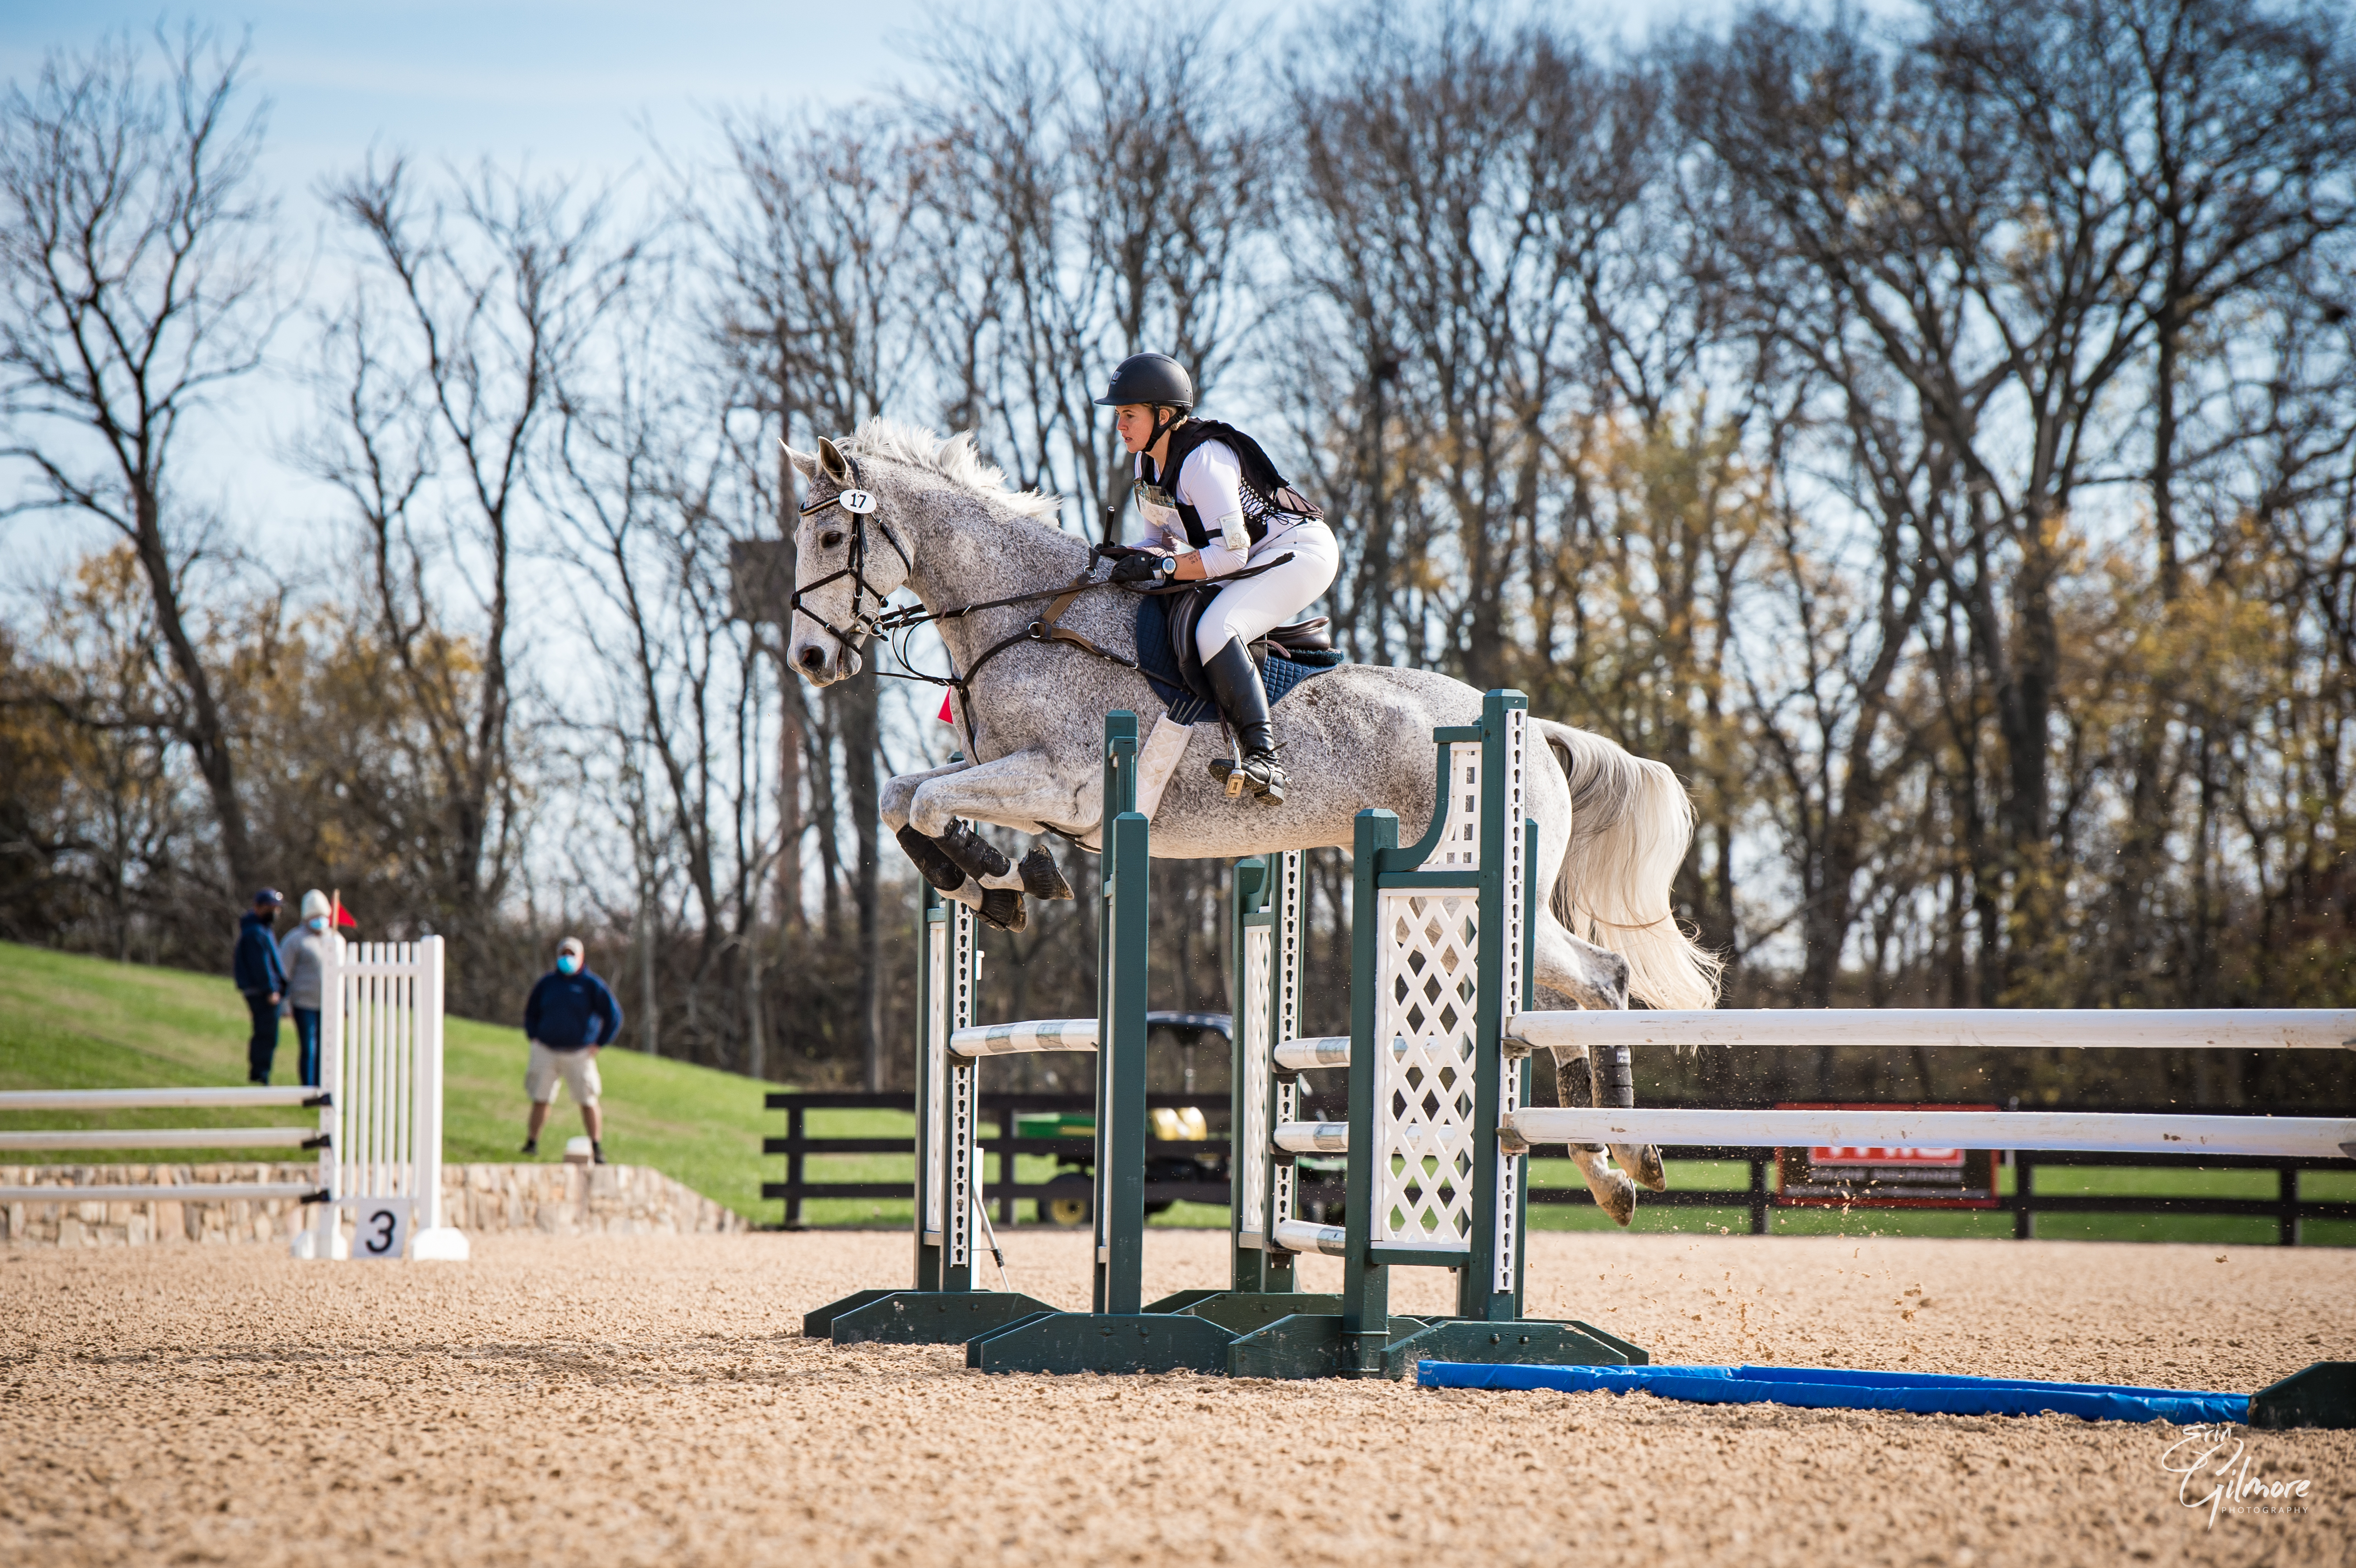 On deck! Your $25 gift helps us maintain the arena jumps by purchasing paint, stain, and other supplies needed at the Morven Park International Equestrian Center!